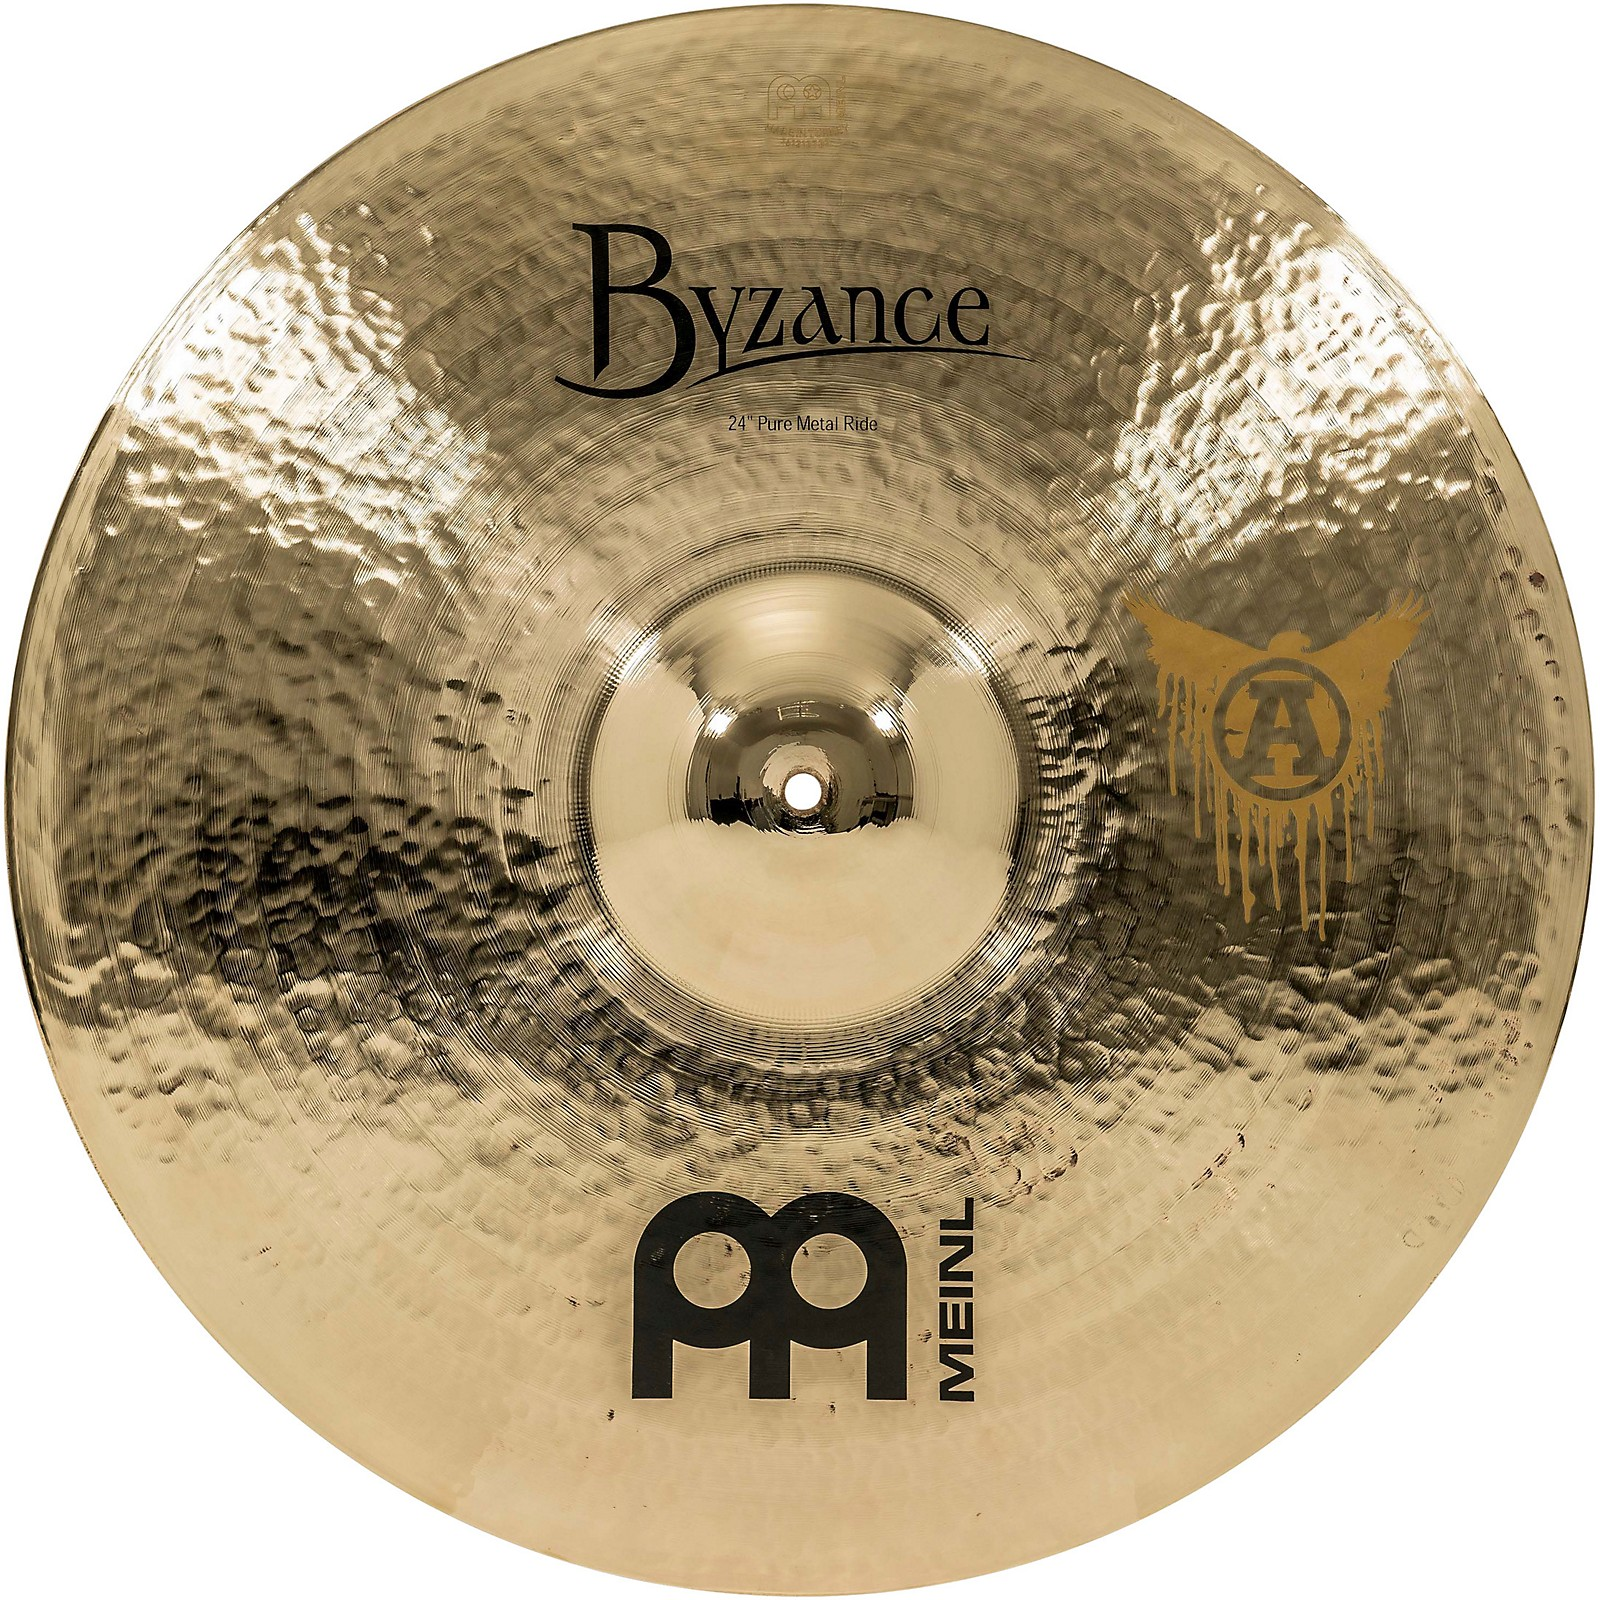 Meinl Byzance Brilliant Chris Adler Signature Pure Metal Ride Cymbal